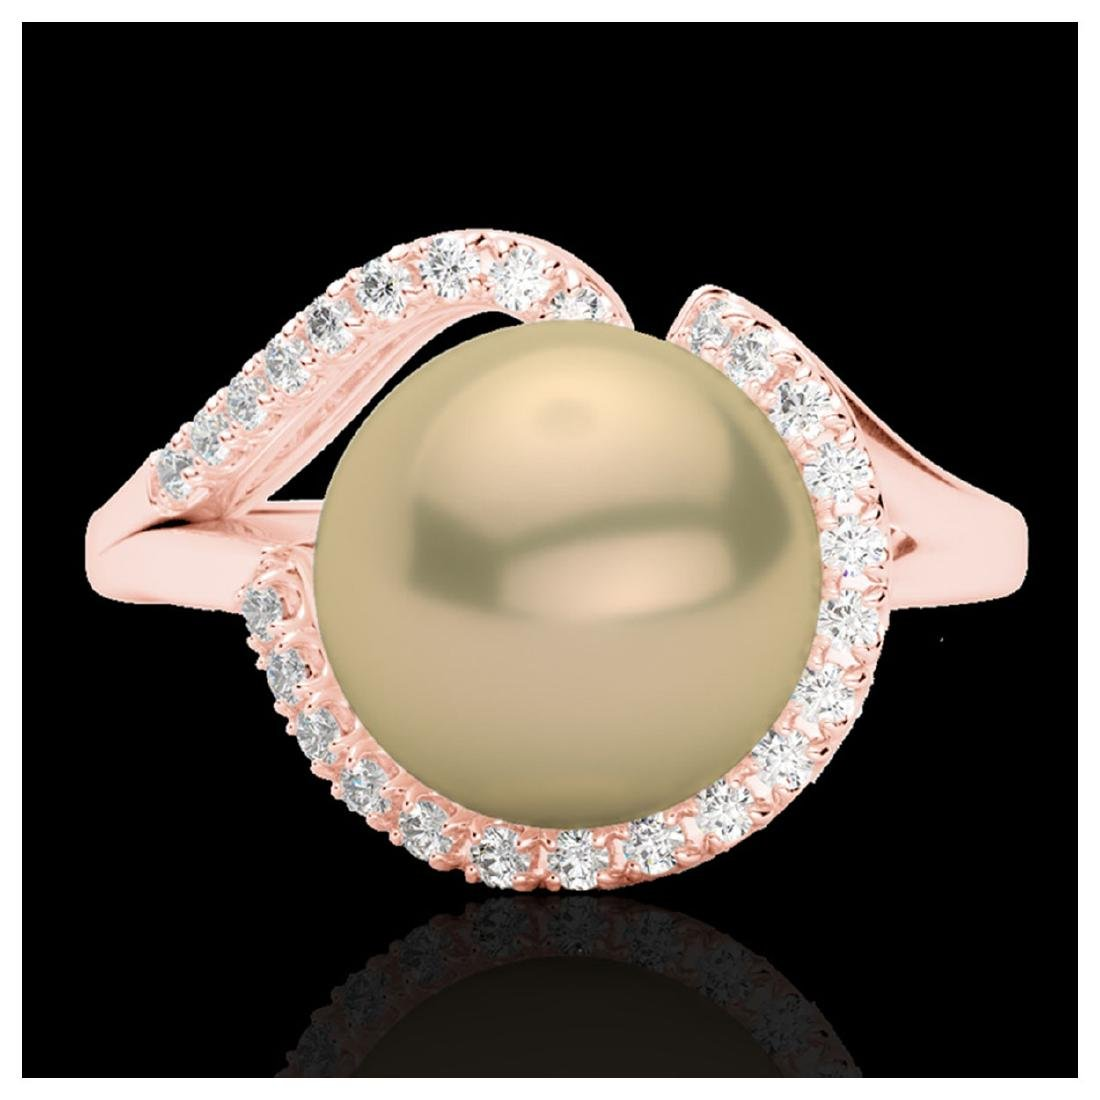 0.27 ctw VS/SI Diamond & Golden Pearl Ring 14K Rose